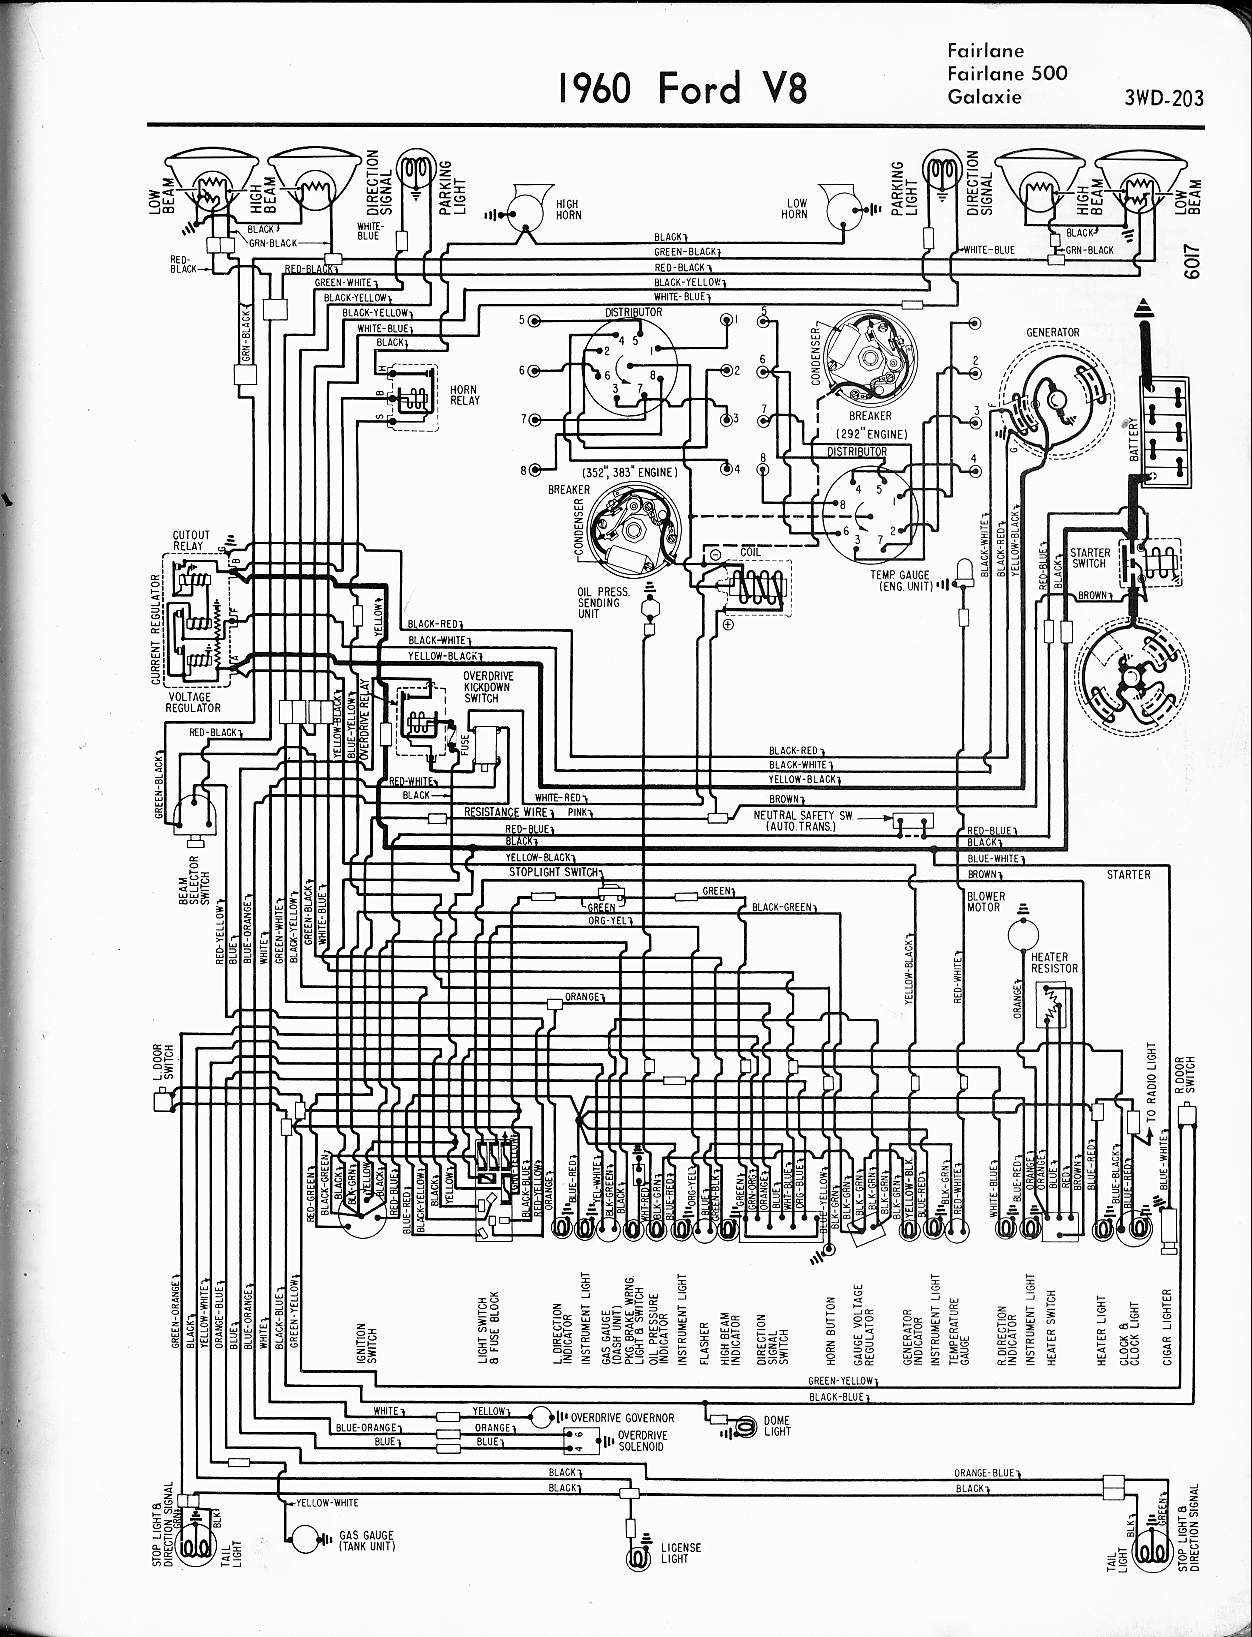 hight resolution of 1960 ford f100 wiring schema diagram database mix 1960 ford f100 wiring wiring diagram article 1960 1959 ford f100 headlight switch